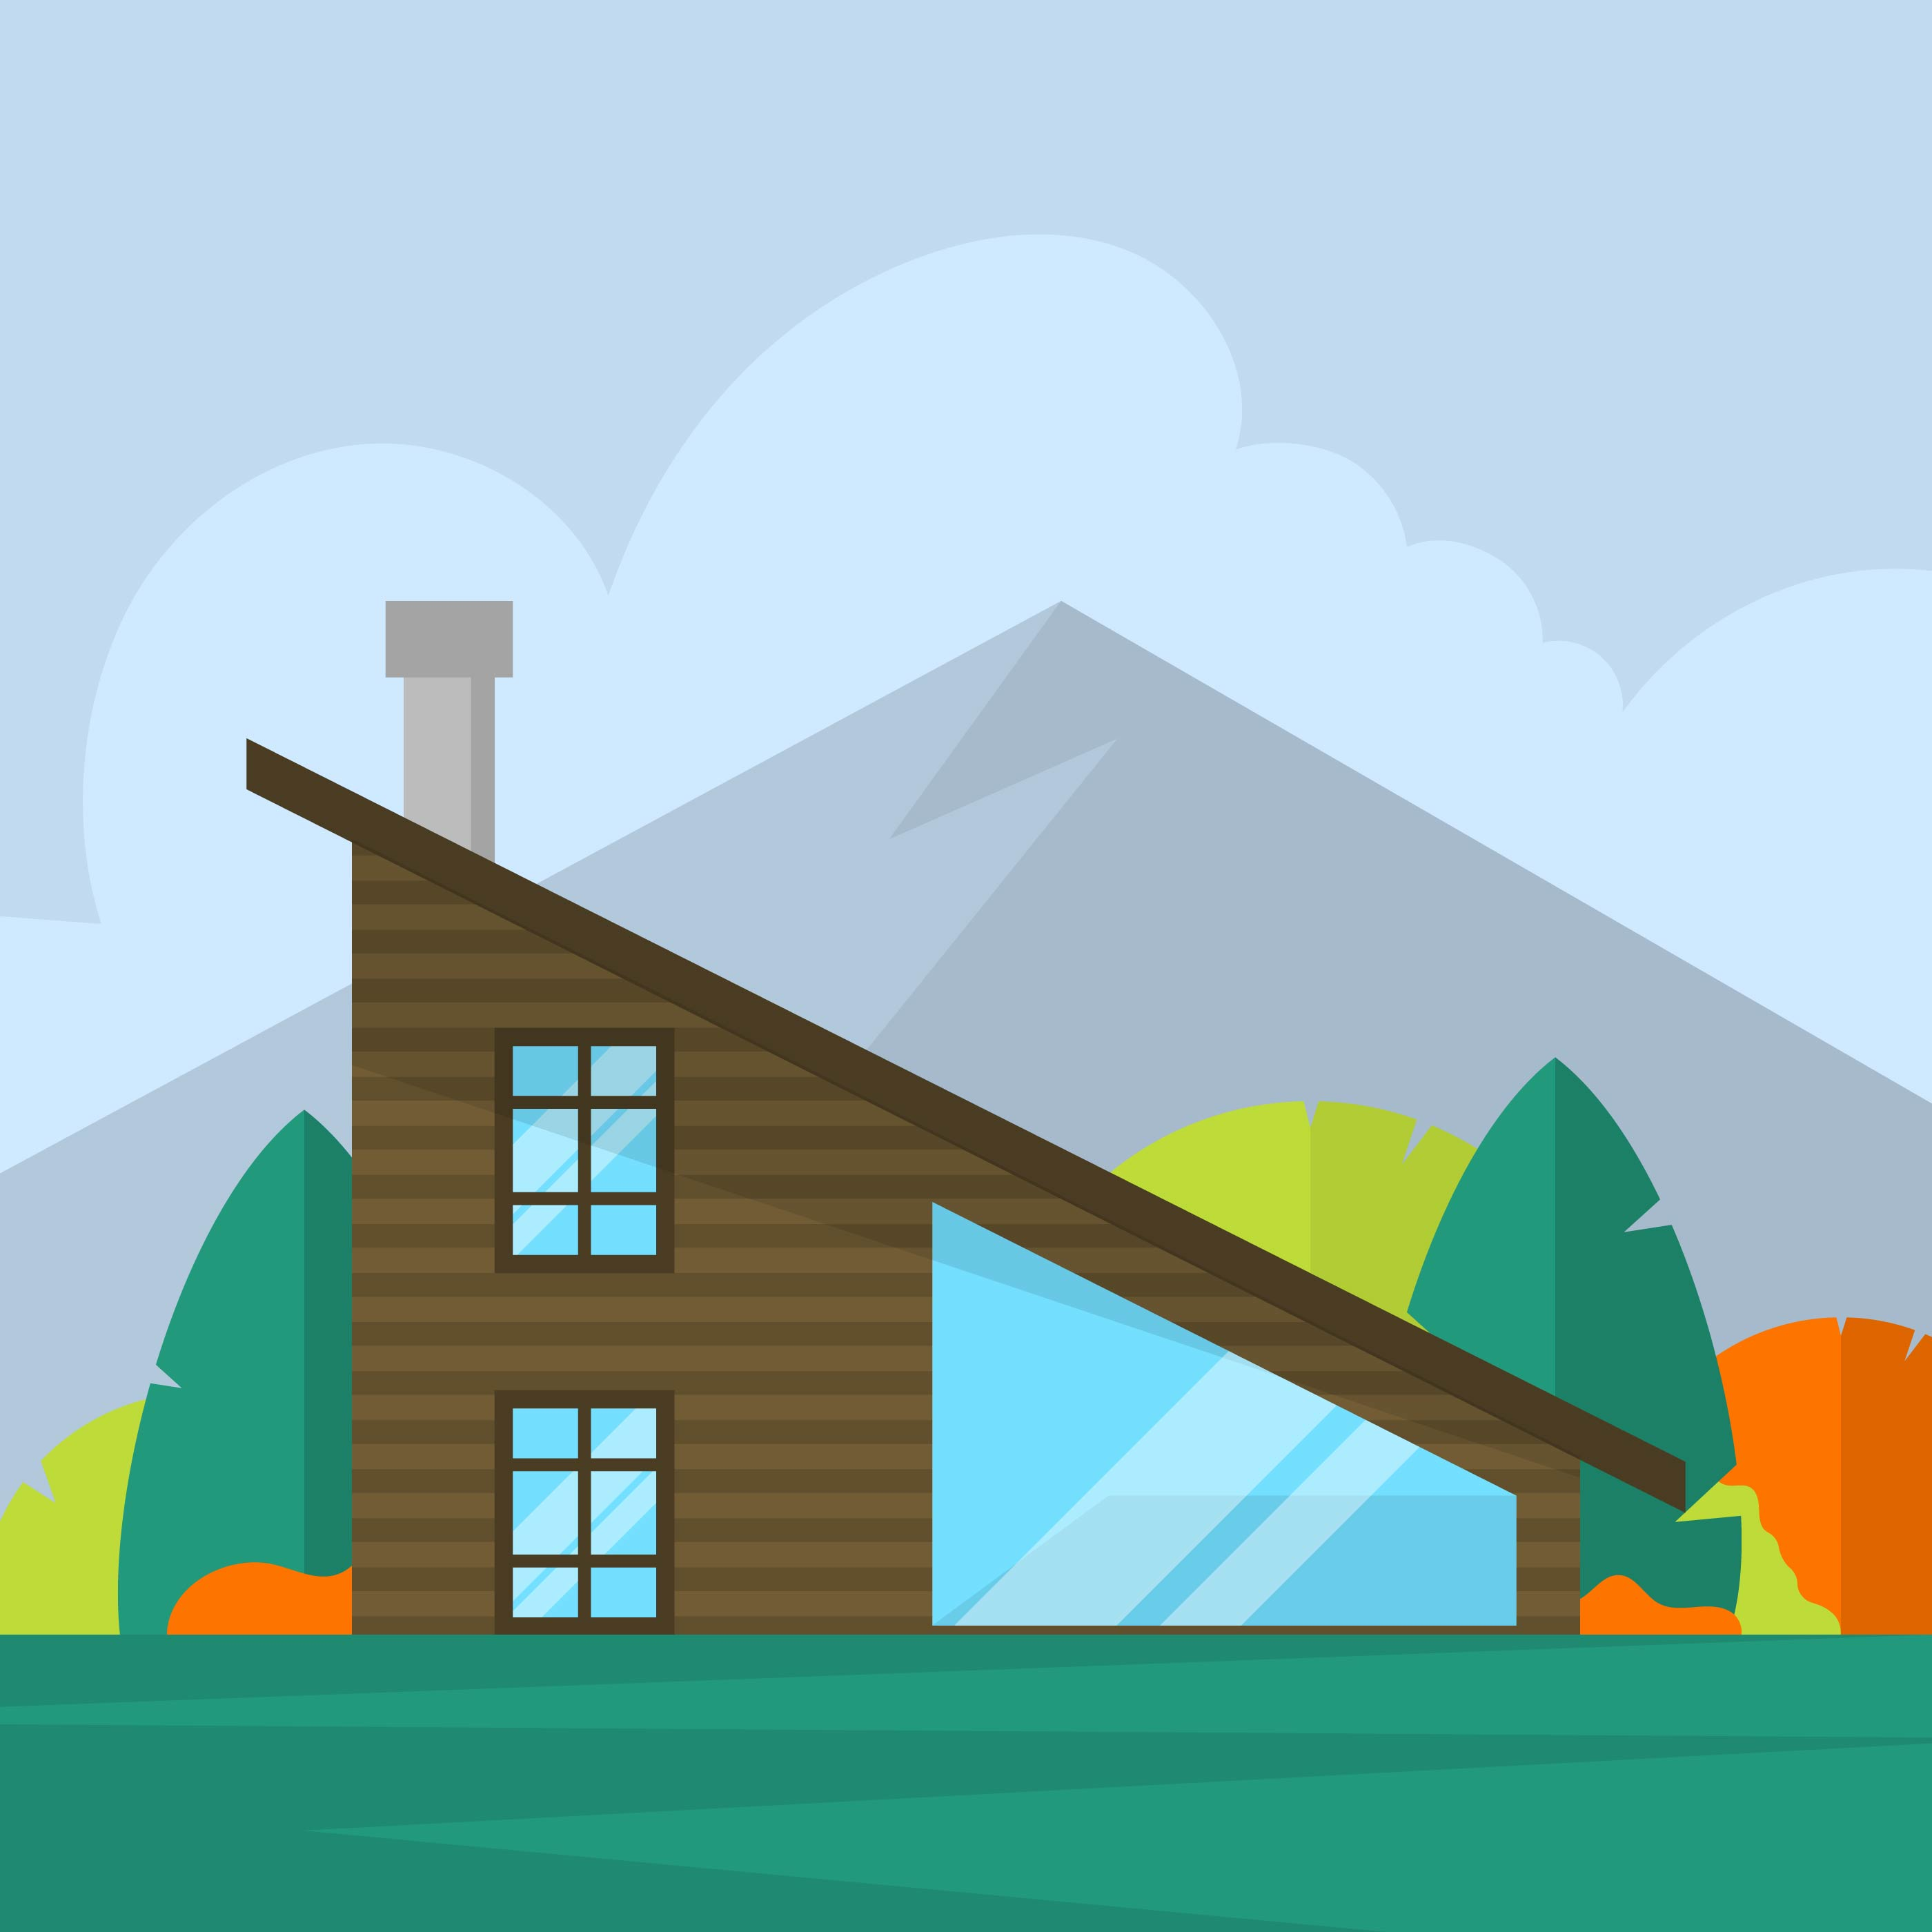 flat-modern-cabin-in-the-woods-vector-illustration Vector Modern House Design on modern house map, modern house big, modern house clipart, modern house green, garden vector, modern house illustration, modern house texture, architecture vector, modern house silhouette, design vector, library vector, modern house symbol, modern house design, modern house animation, modern house color, home vector, modern house graphics, modern house sketch, modern house art,